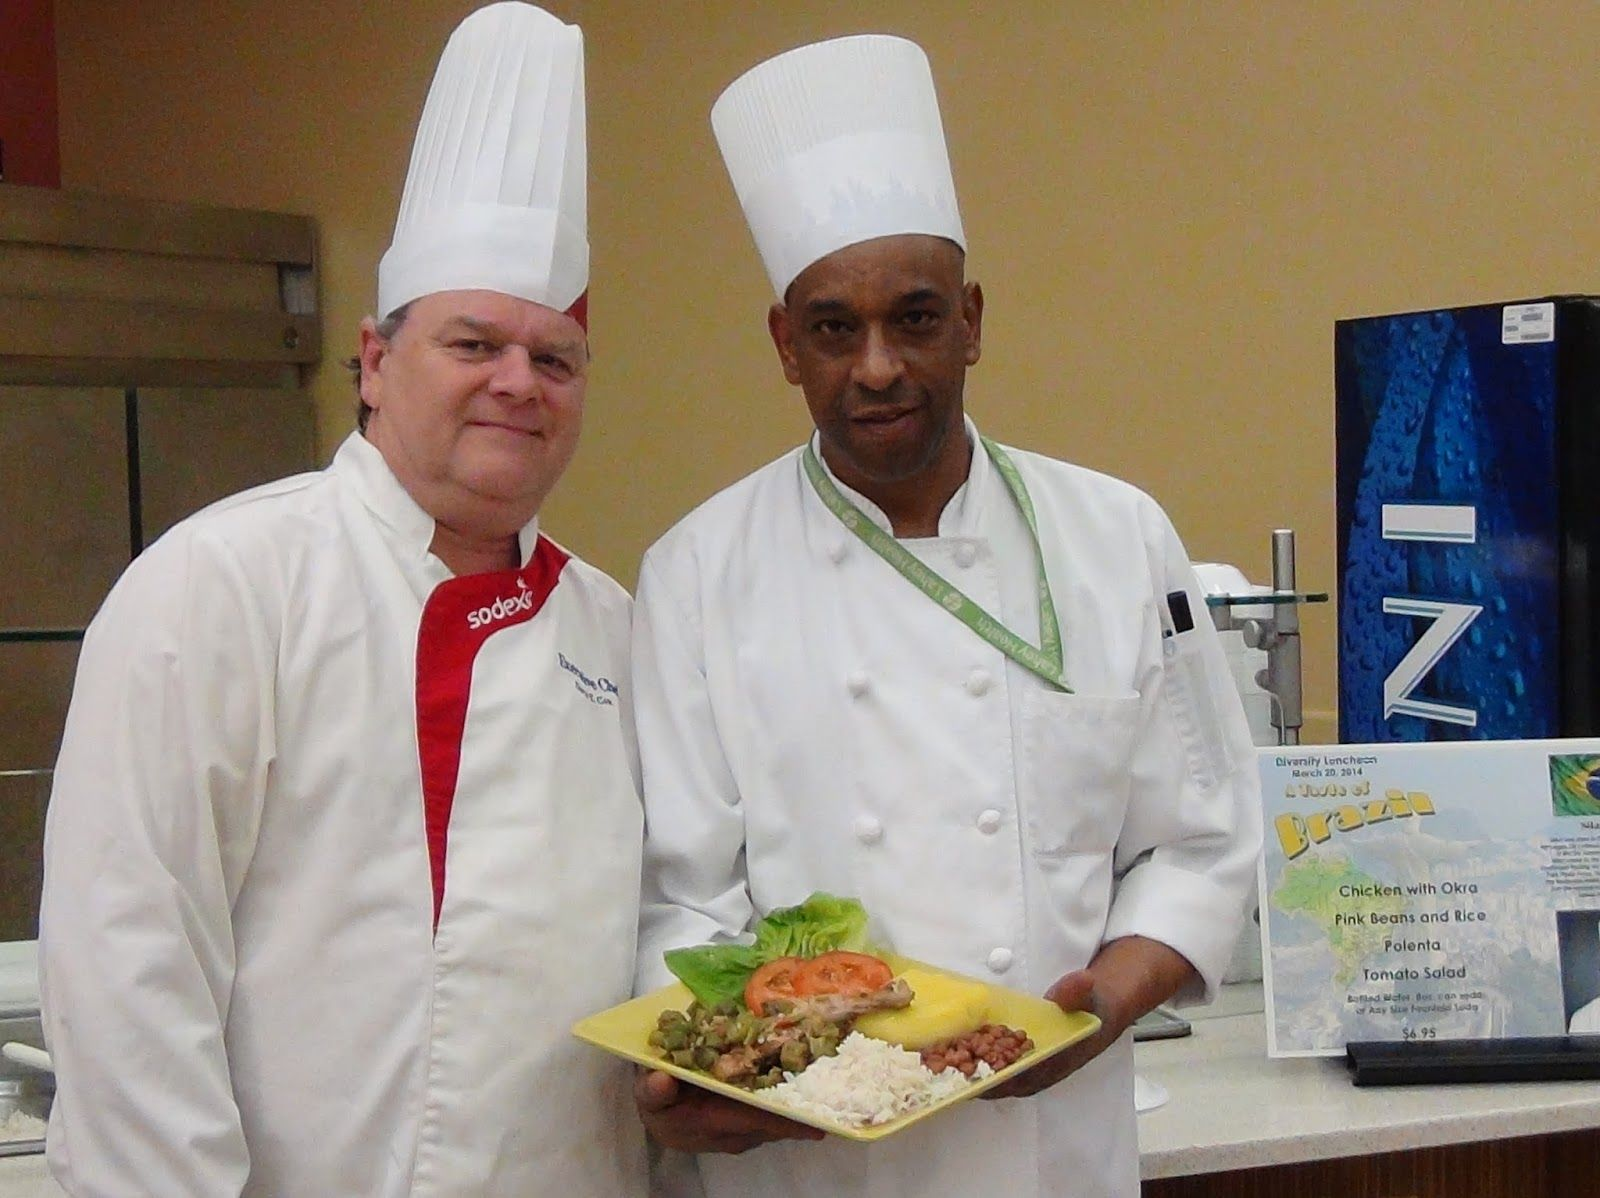 Sodexo at Lahey Hospital & Medical Center Healthcare Food